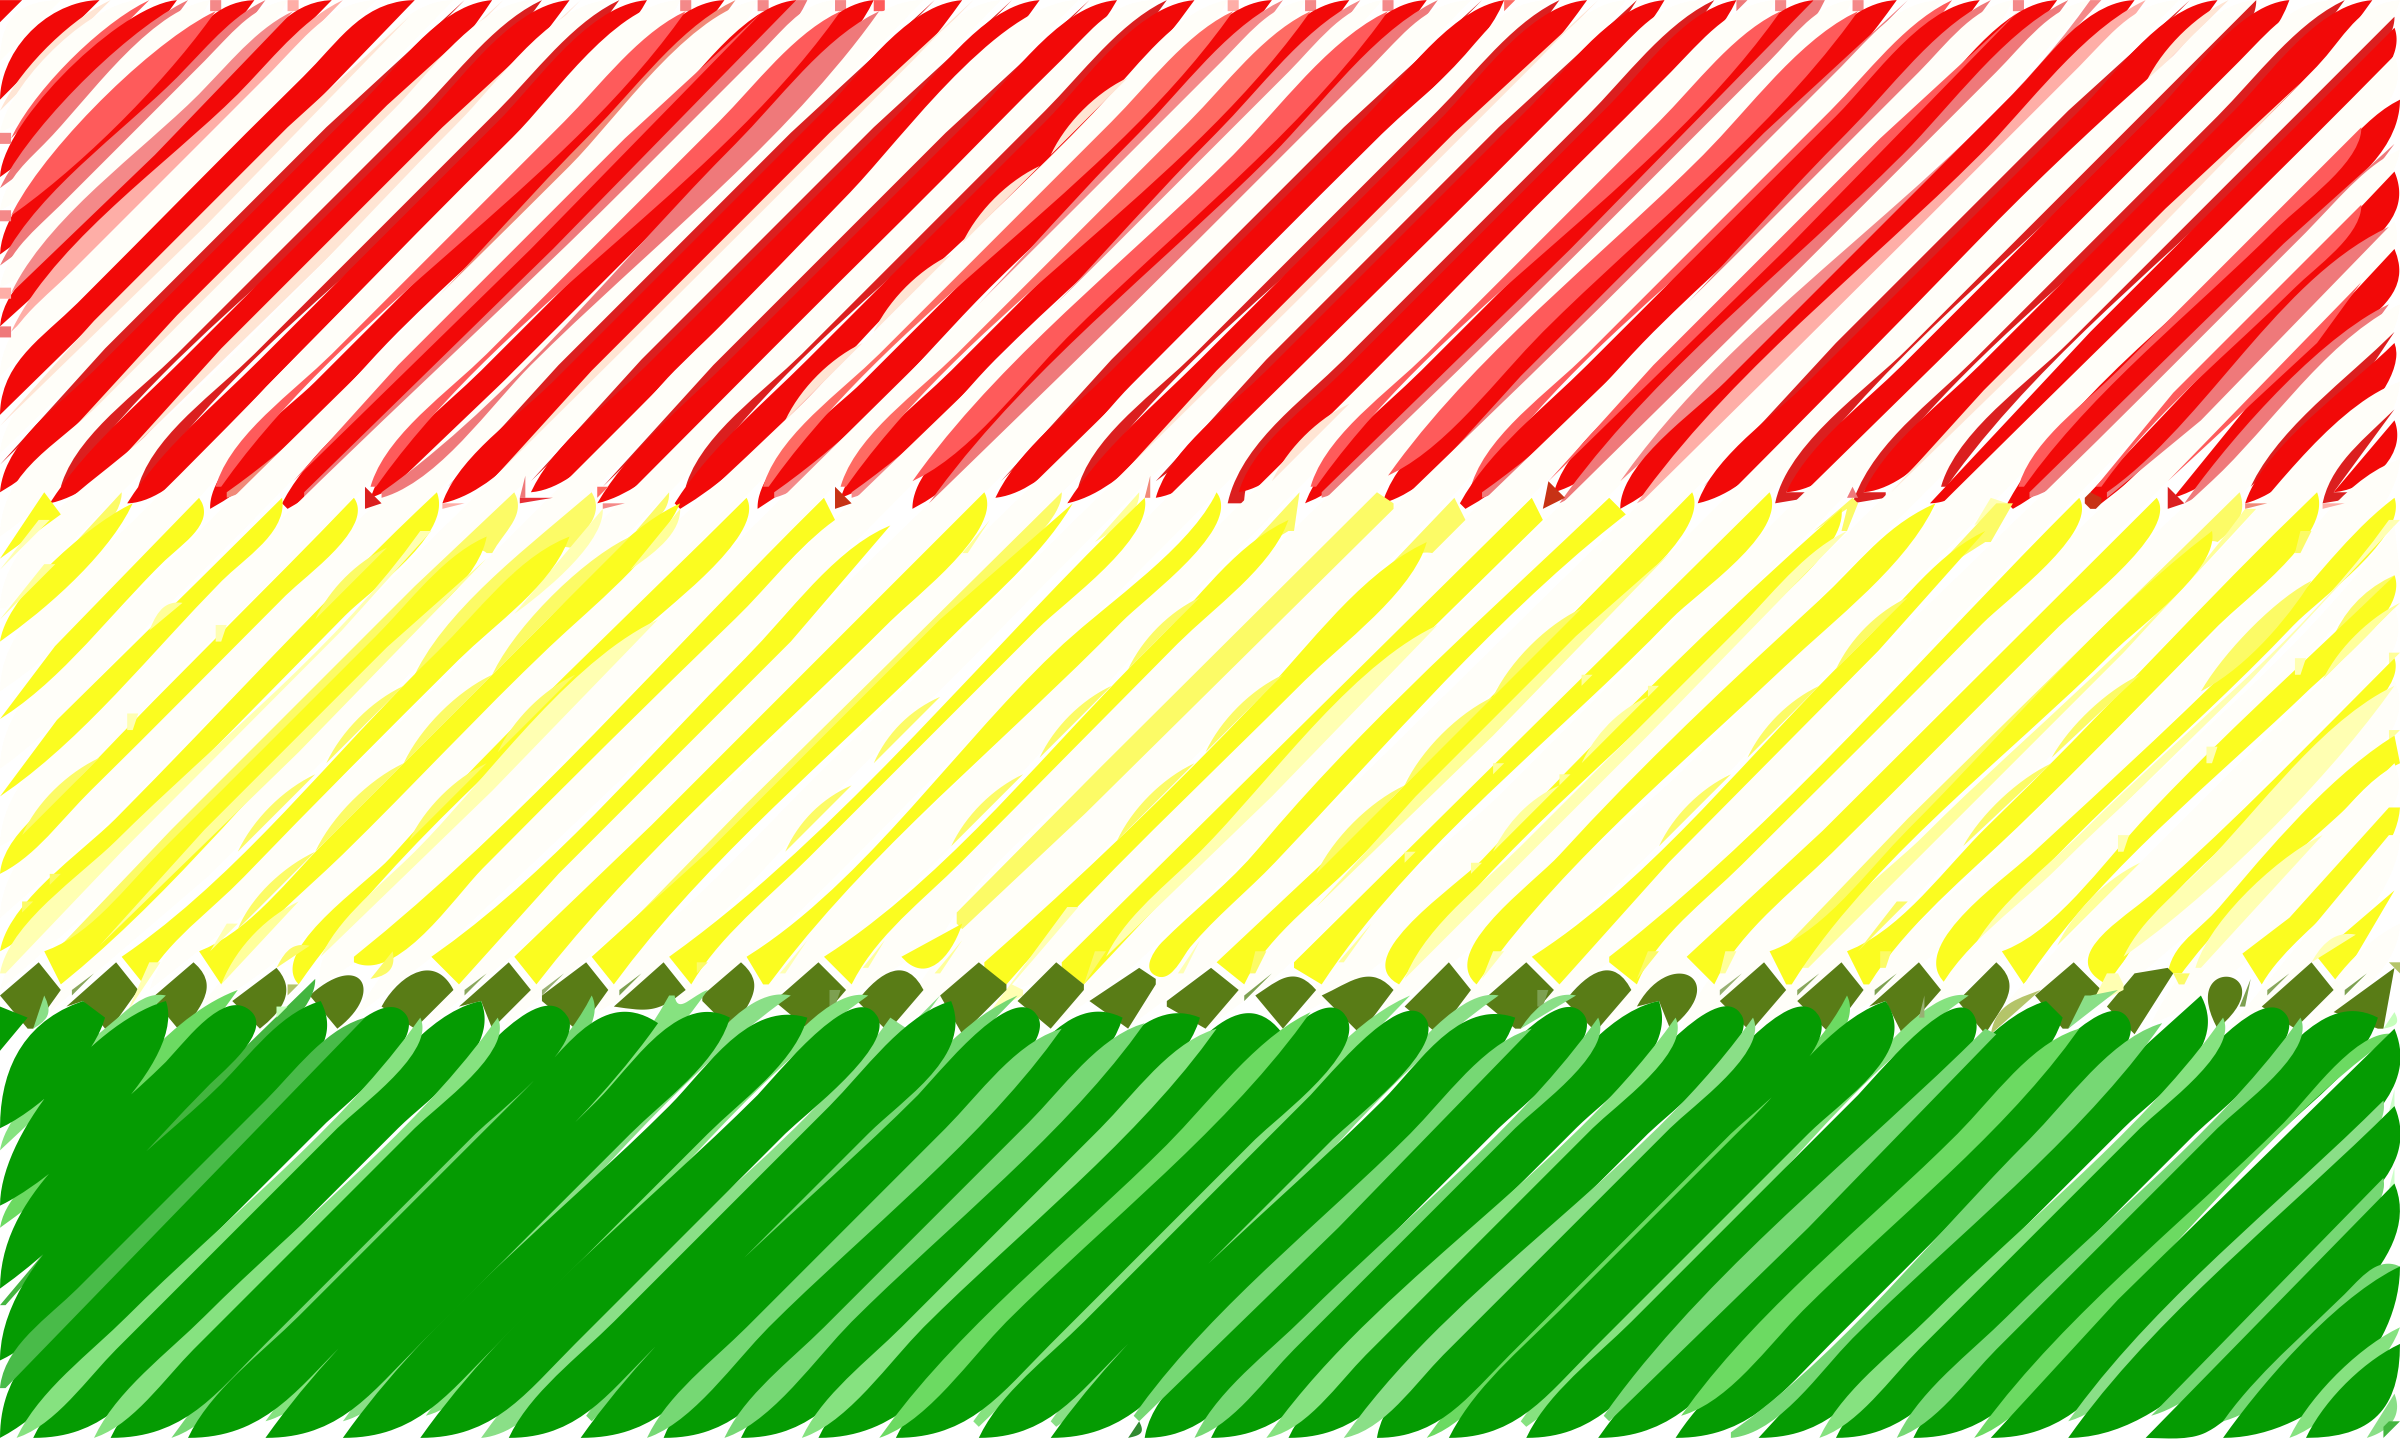 Bolivia flag linear by Joesph